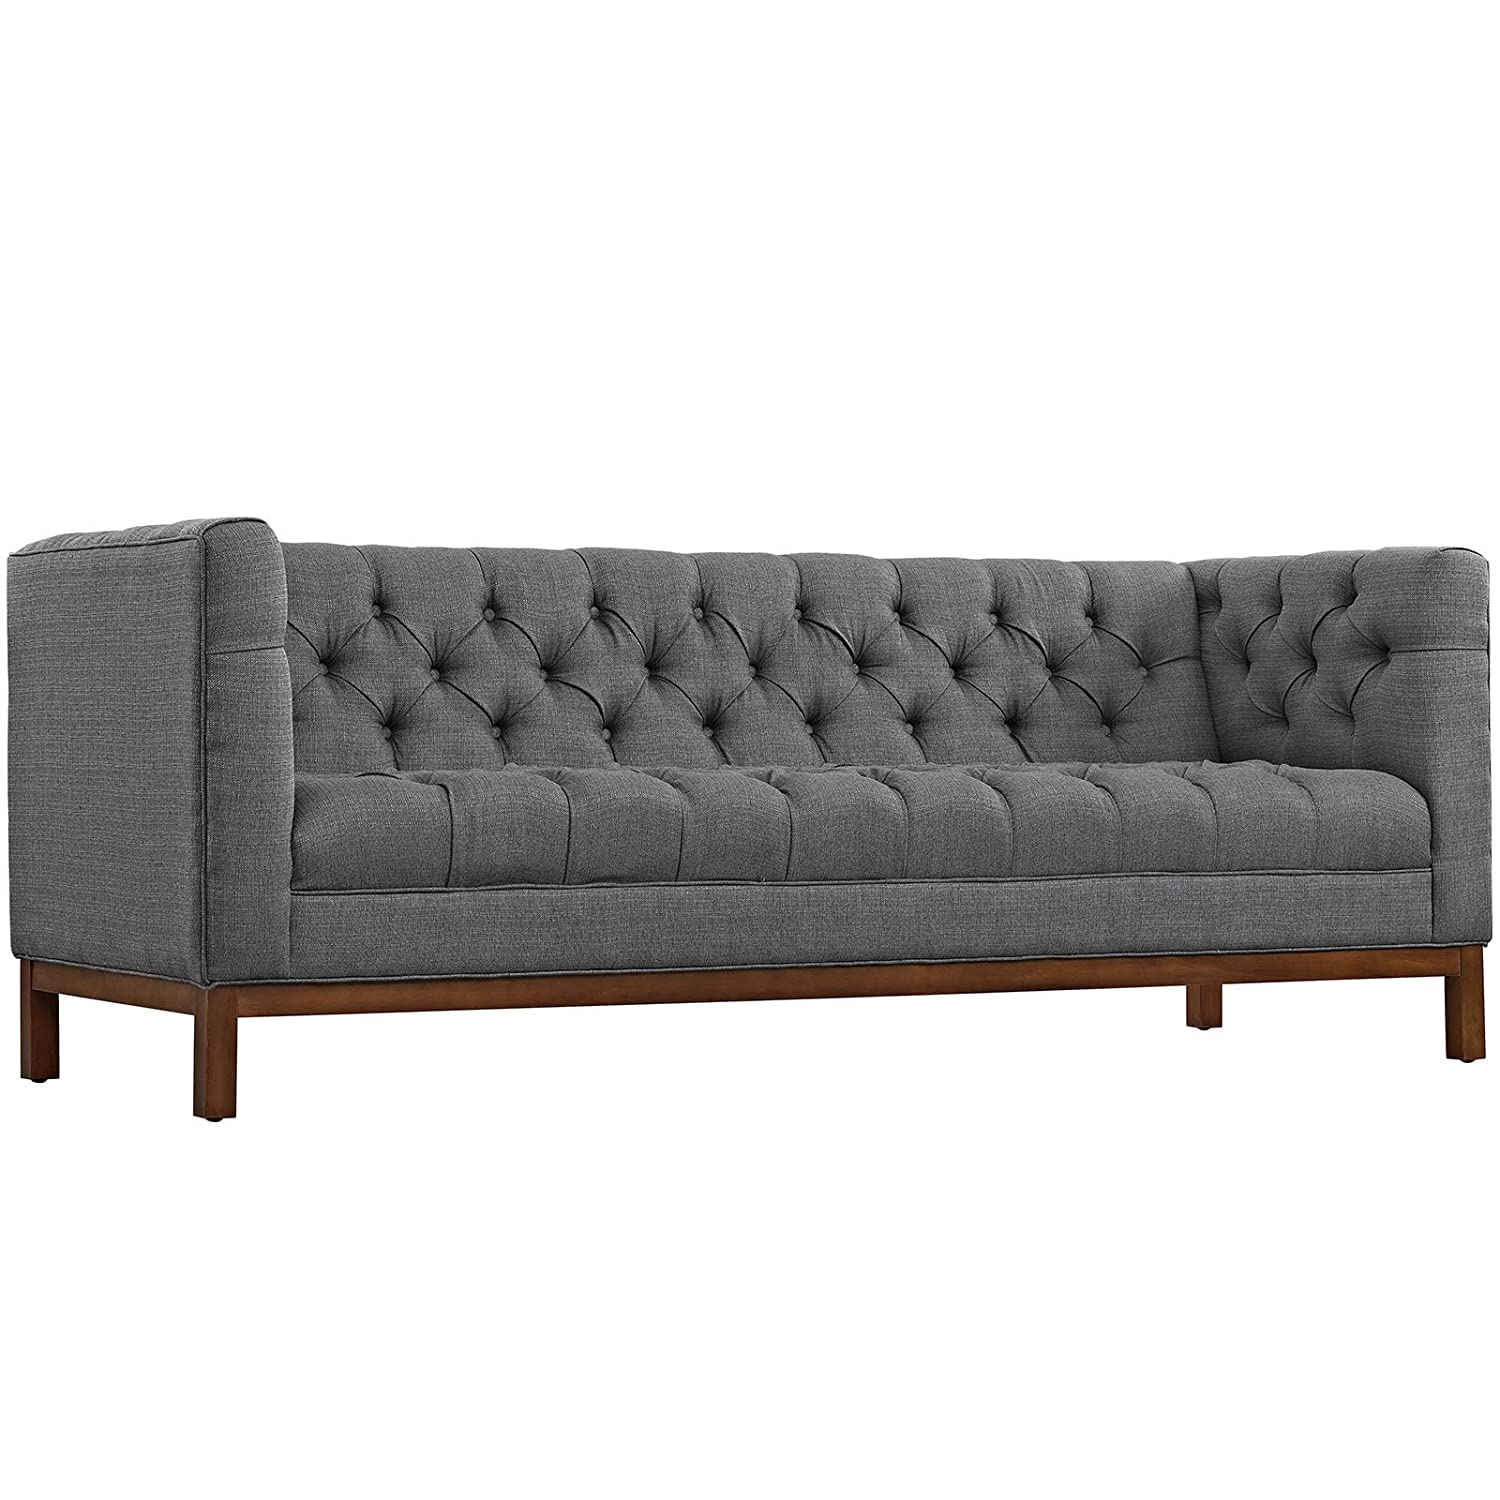 Modway Panache Upholstered Modern Tufted Sofa in Gray